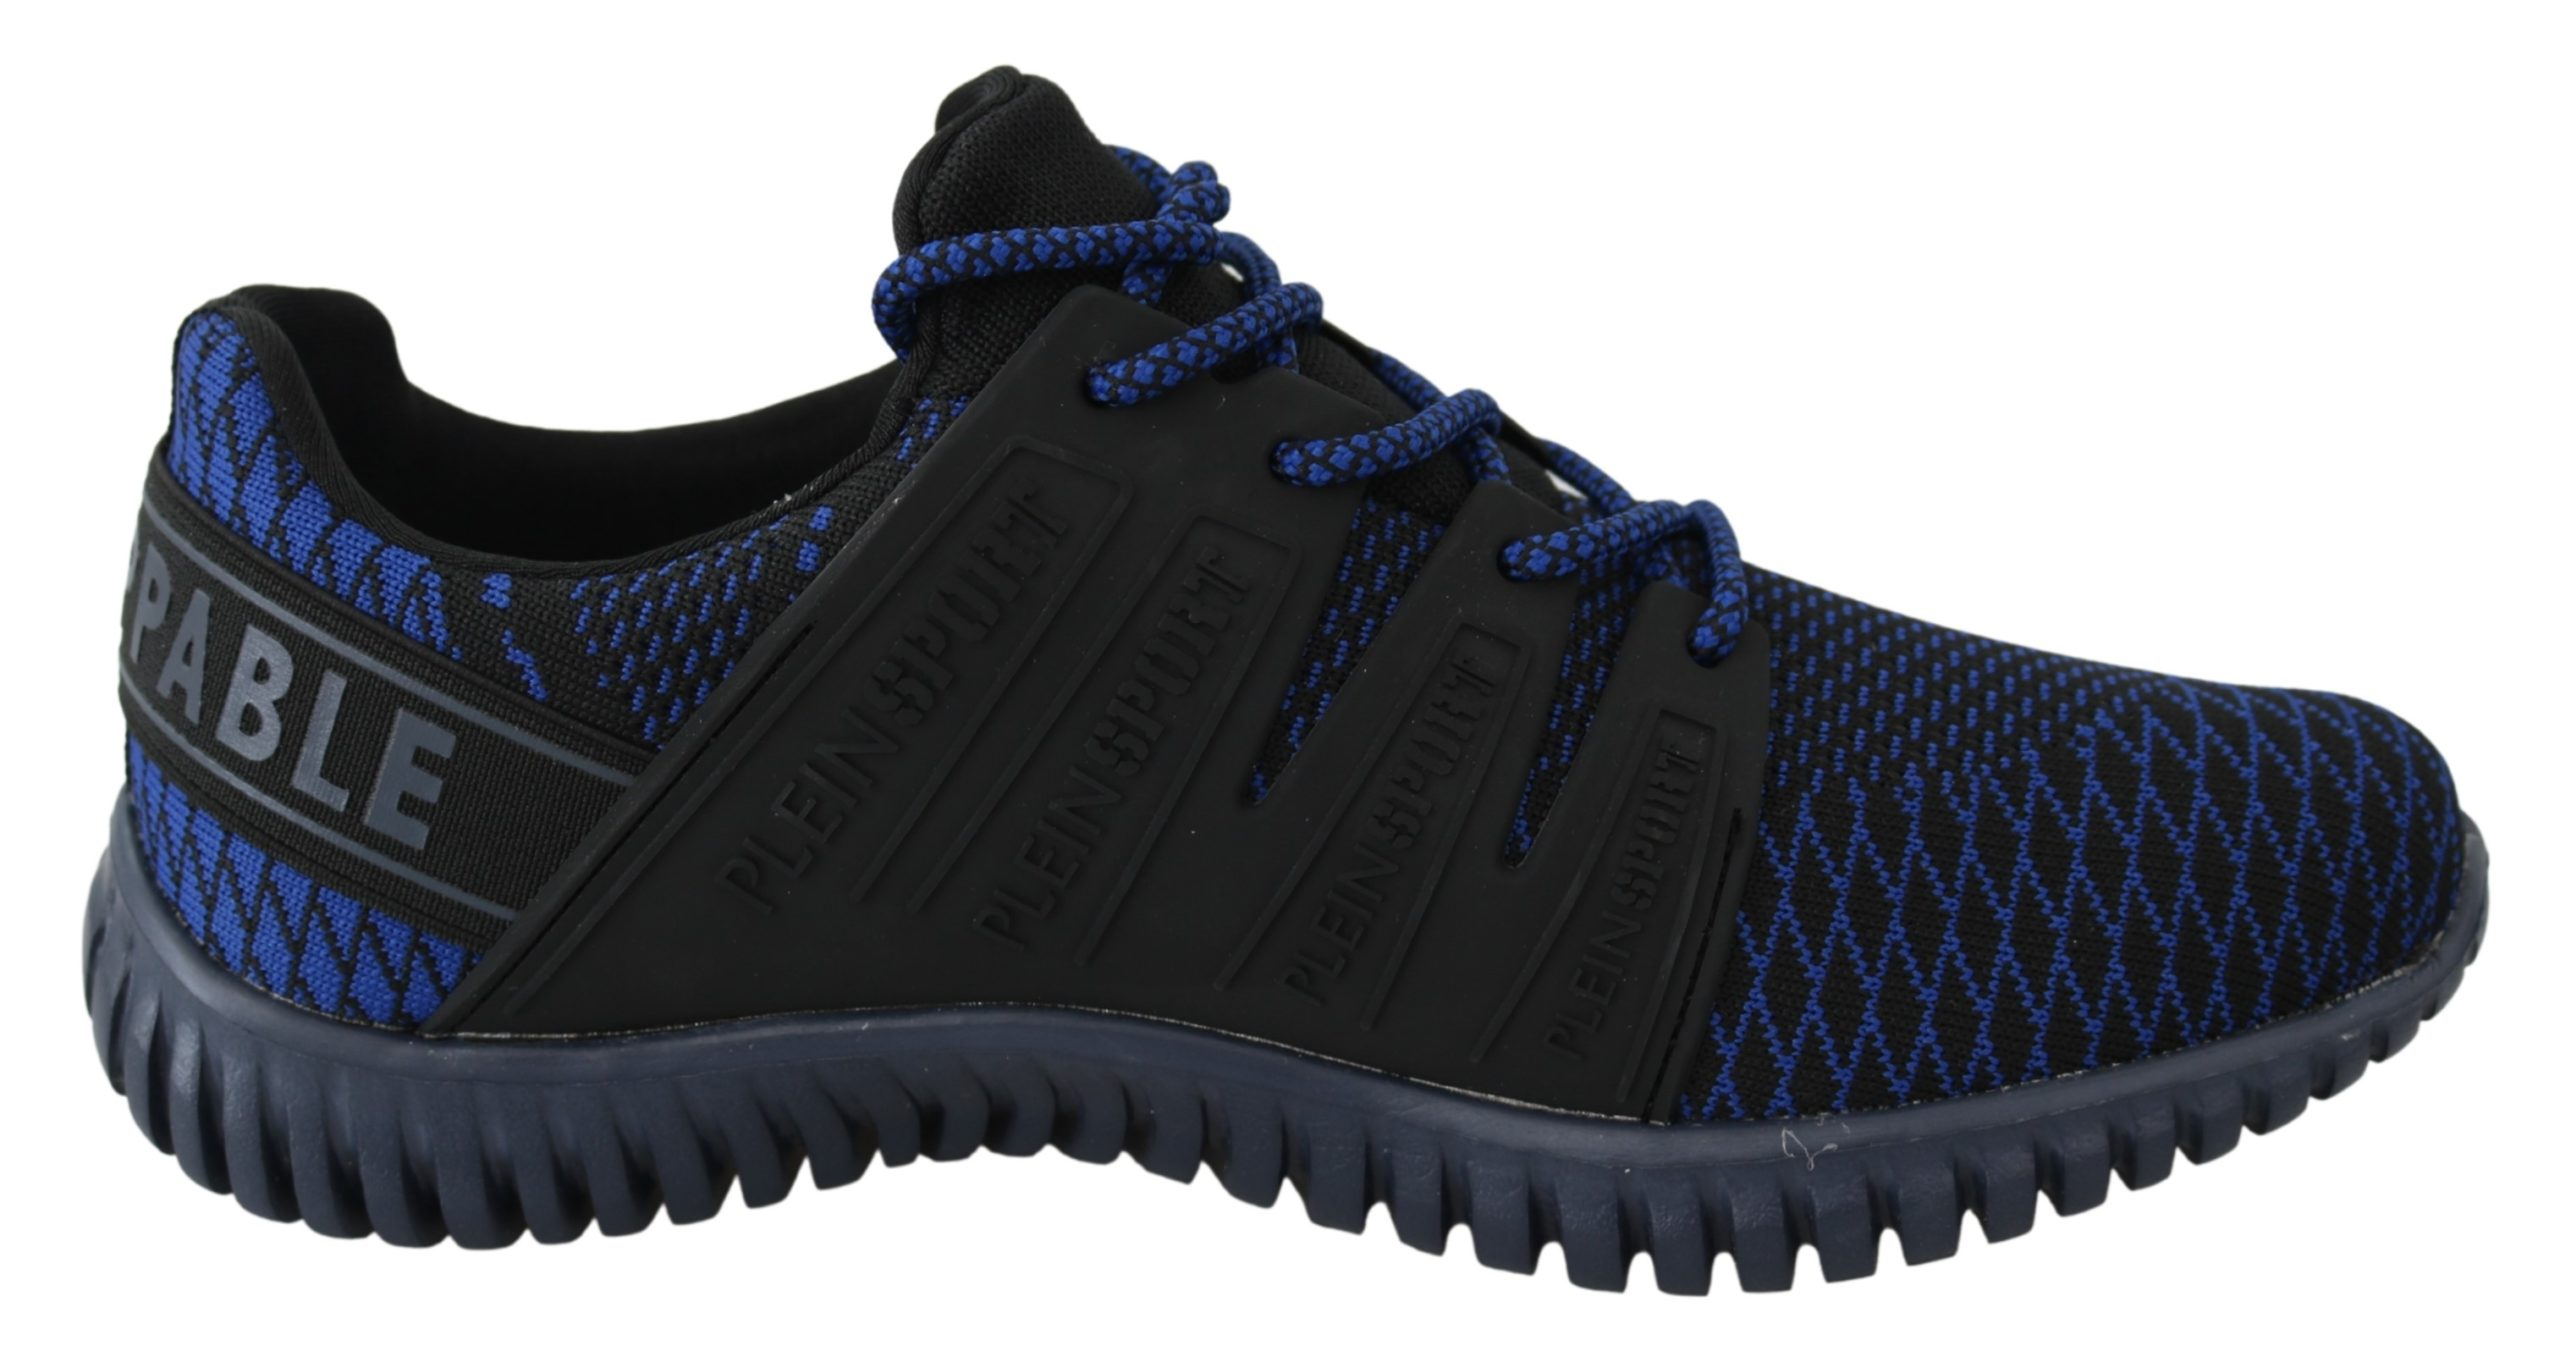 Blue Indaco Polyester Runner Mason Sneakers Shoes - EU40/US7